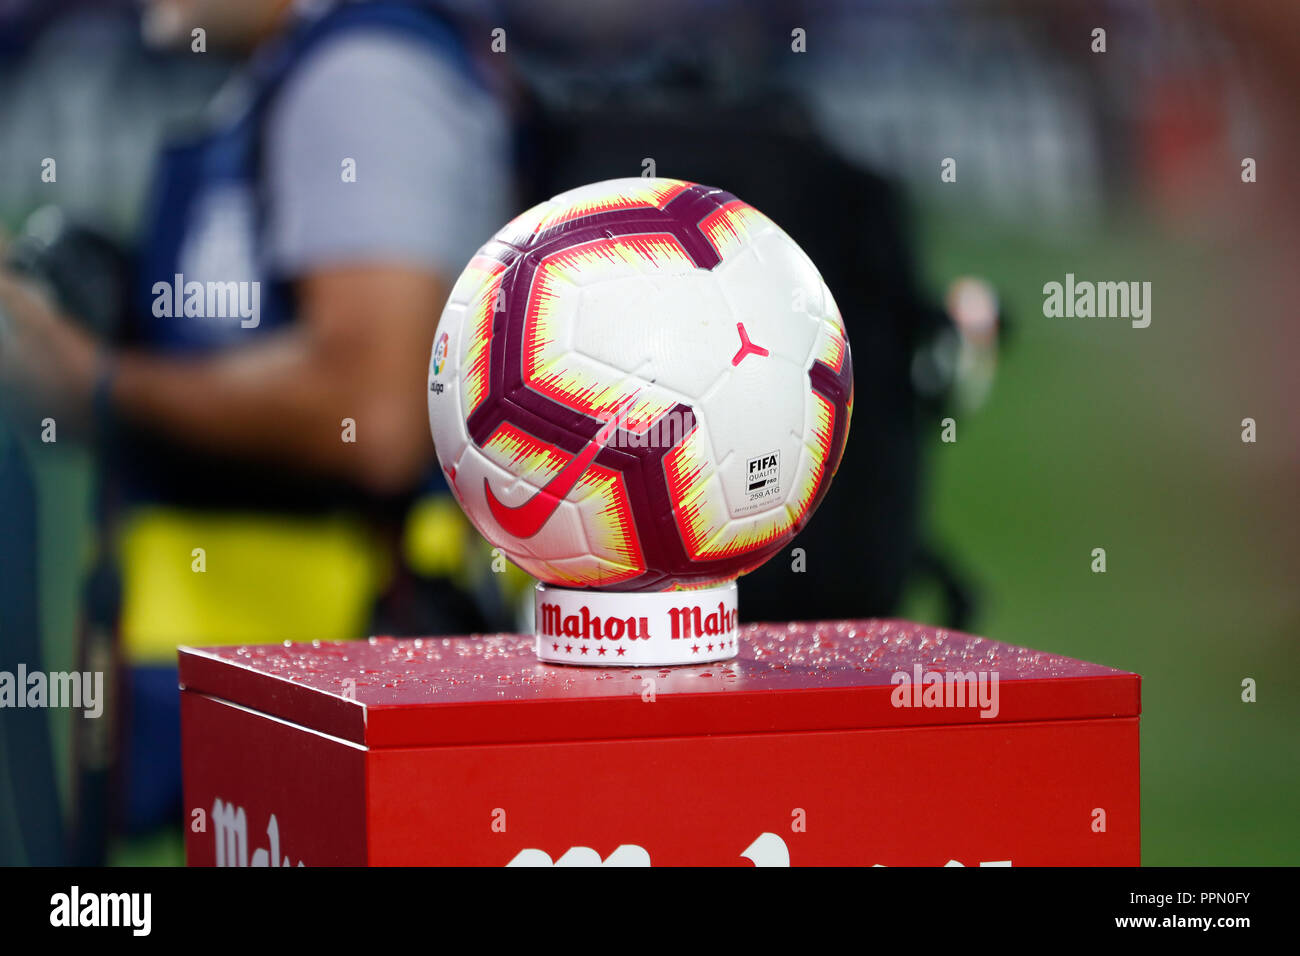 10fc32d3e4144 Nike Ball Stock Photos   Nike Ball Stock Images - Alamy